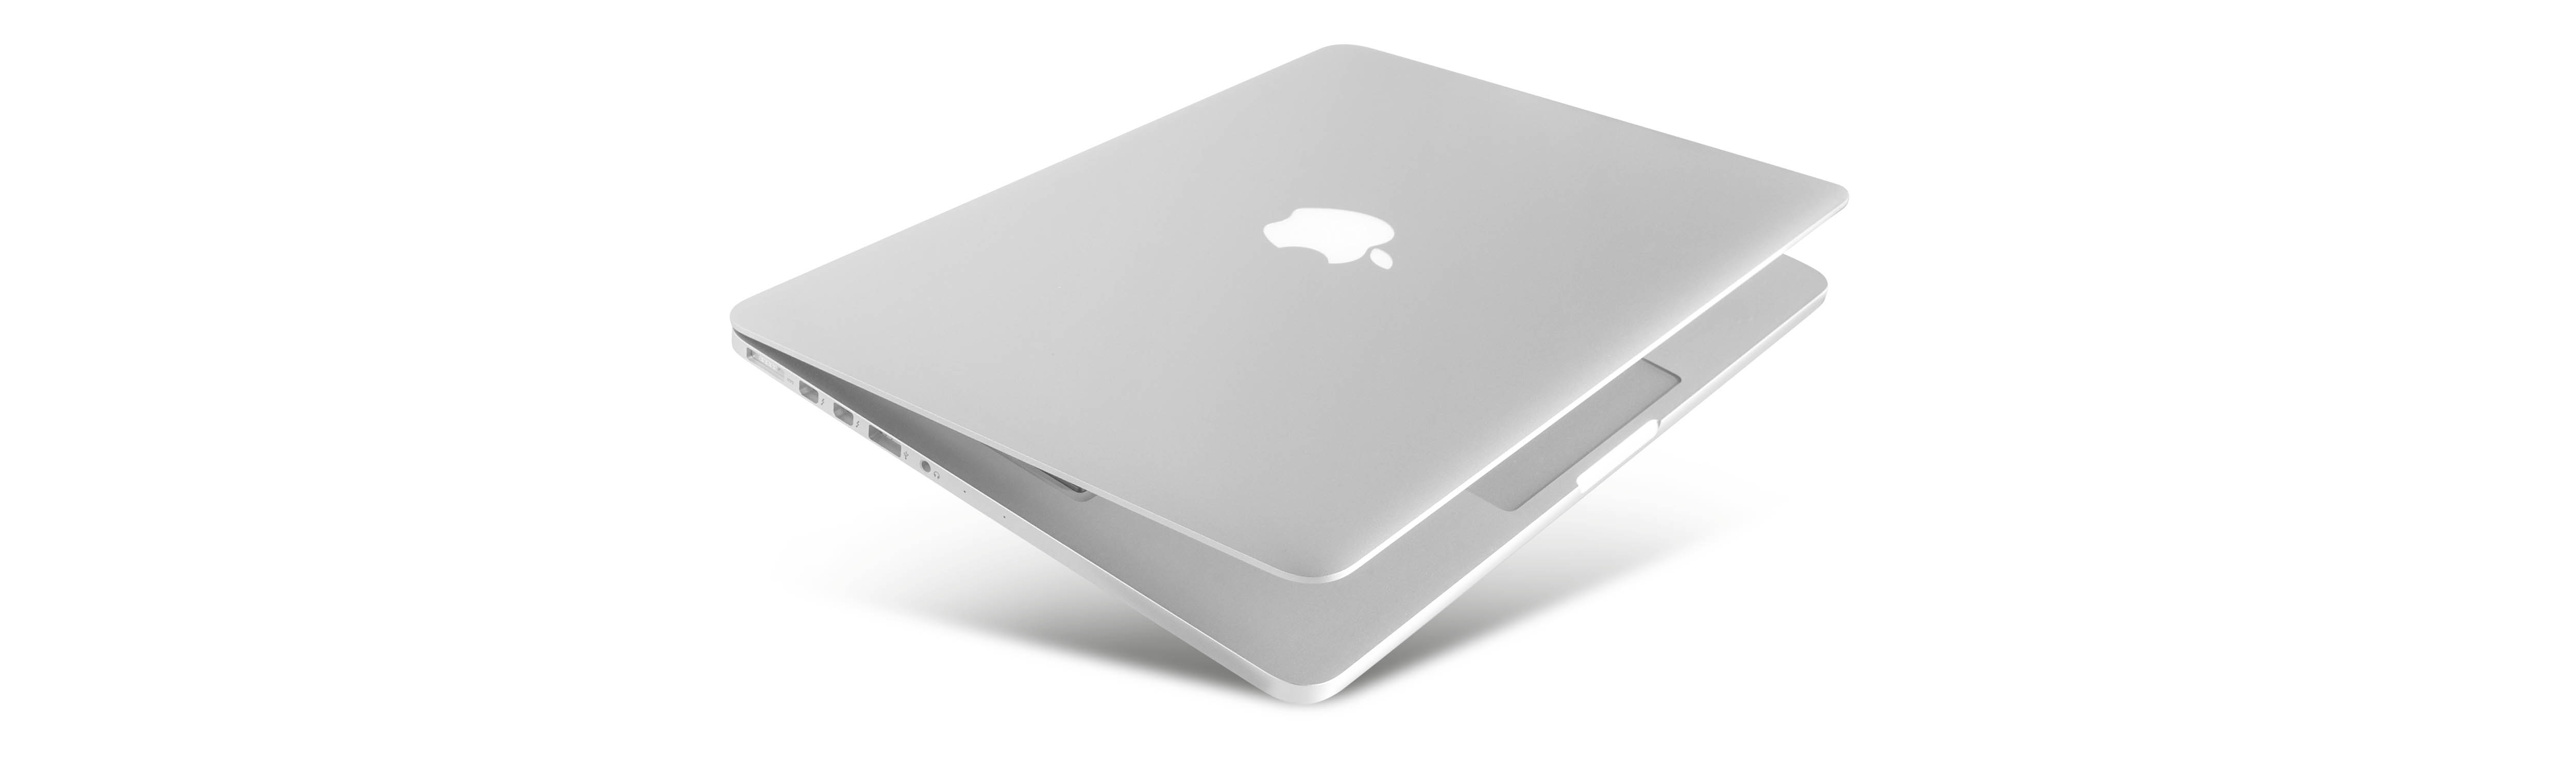 Apple Mac Book Pro Retina - Apple Support Hamburg